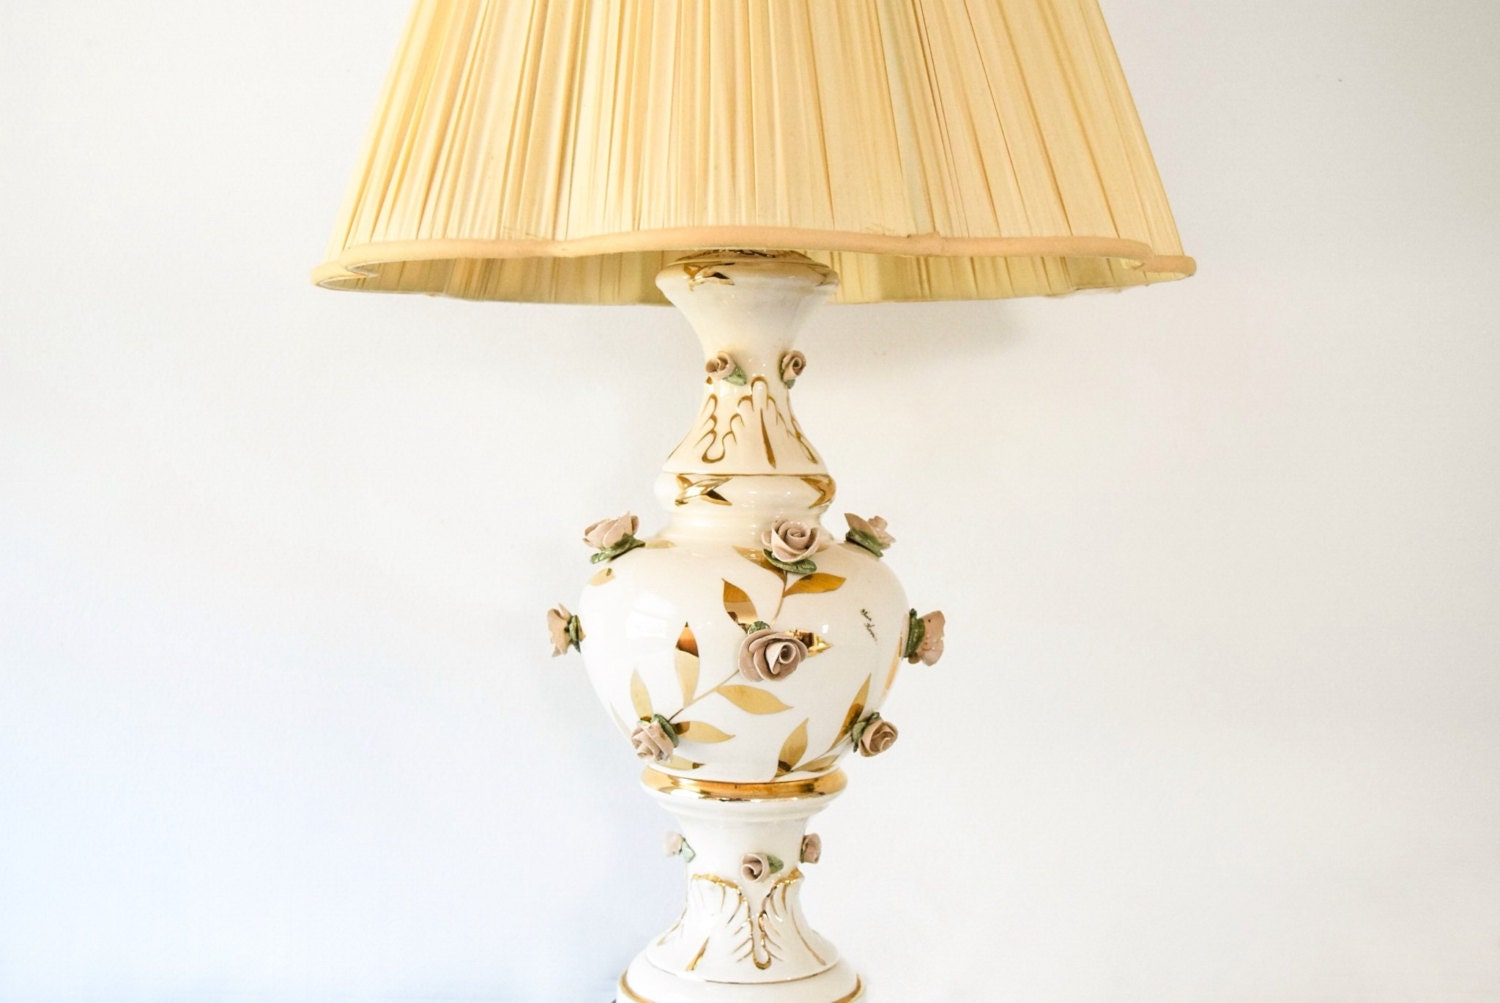 Vintage Table Lamps With Flowers : Antique floral lamp table